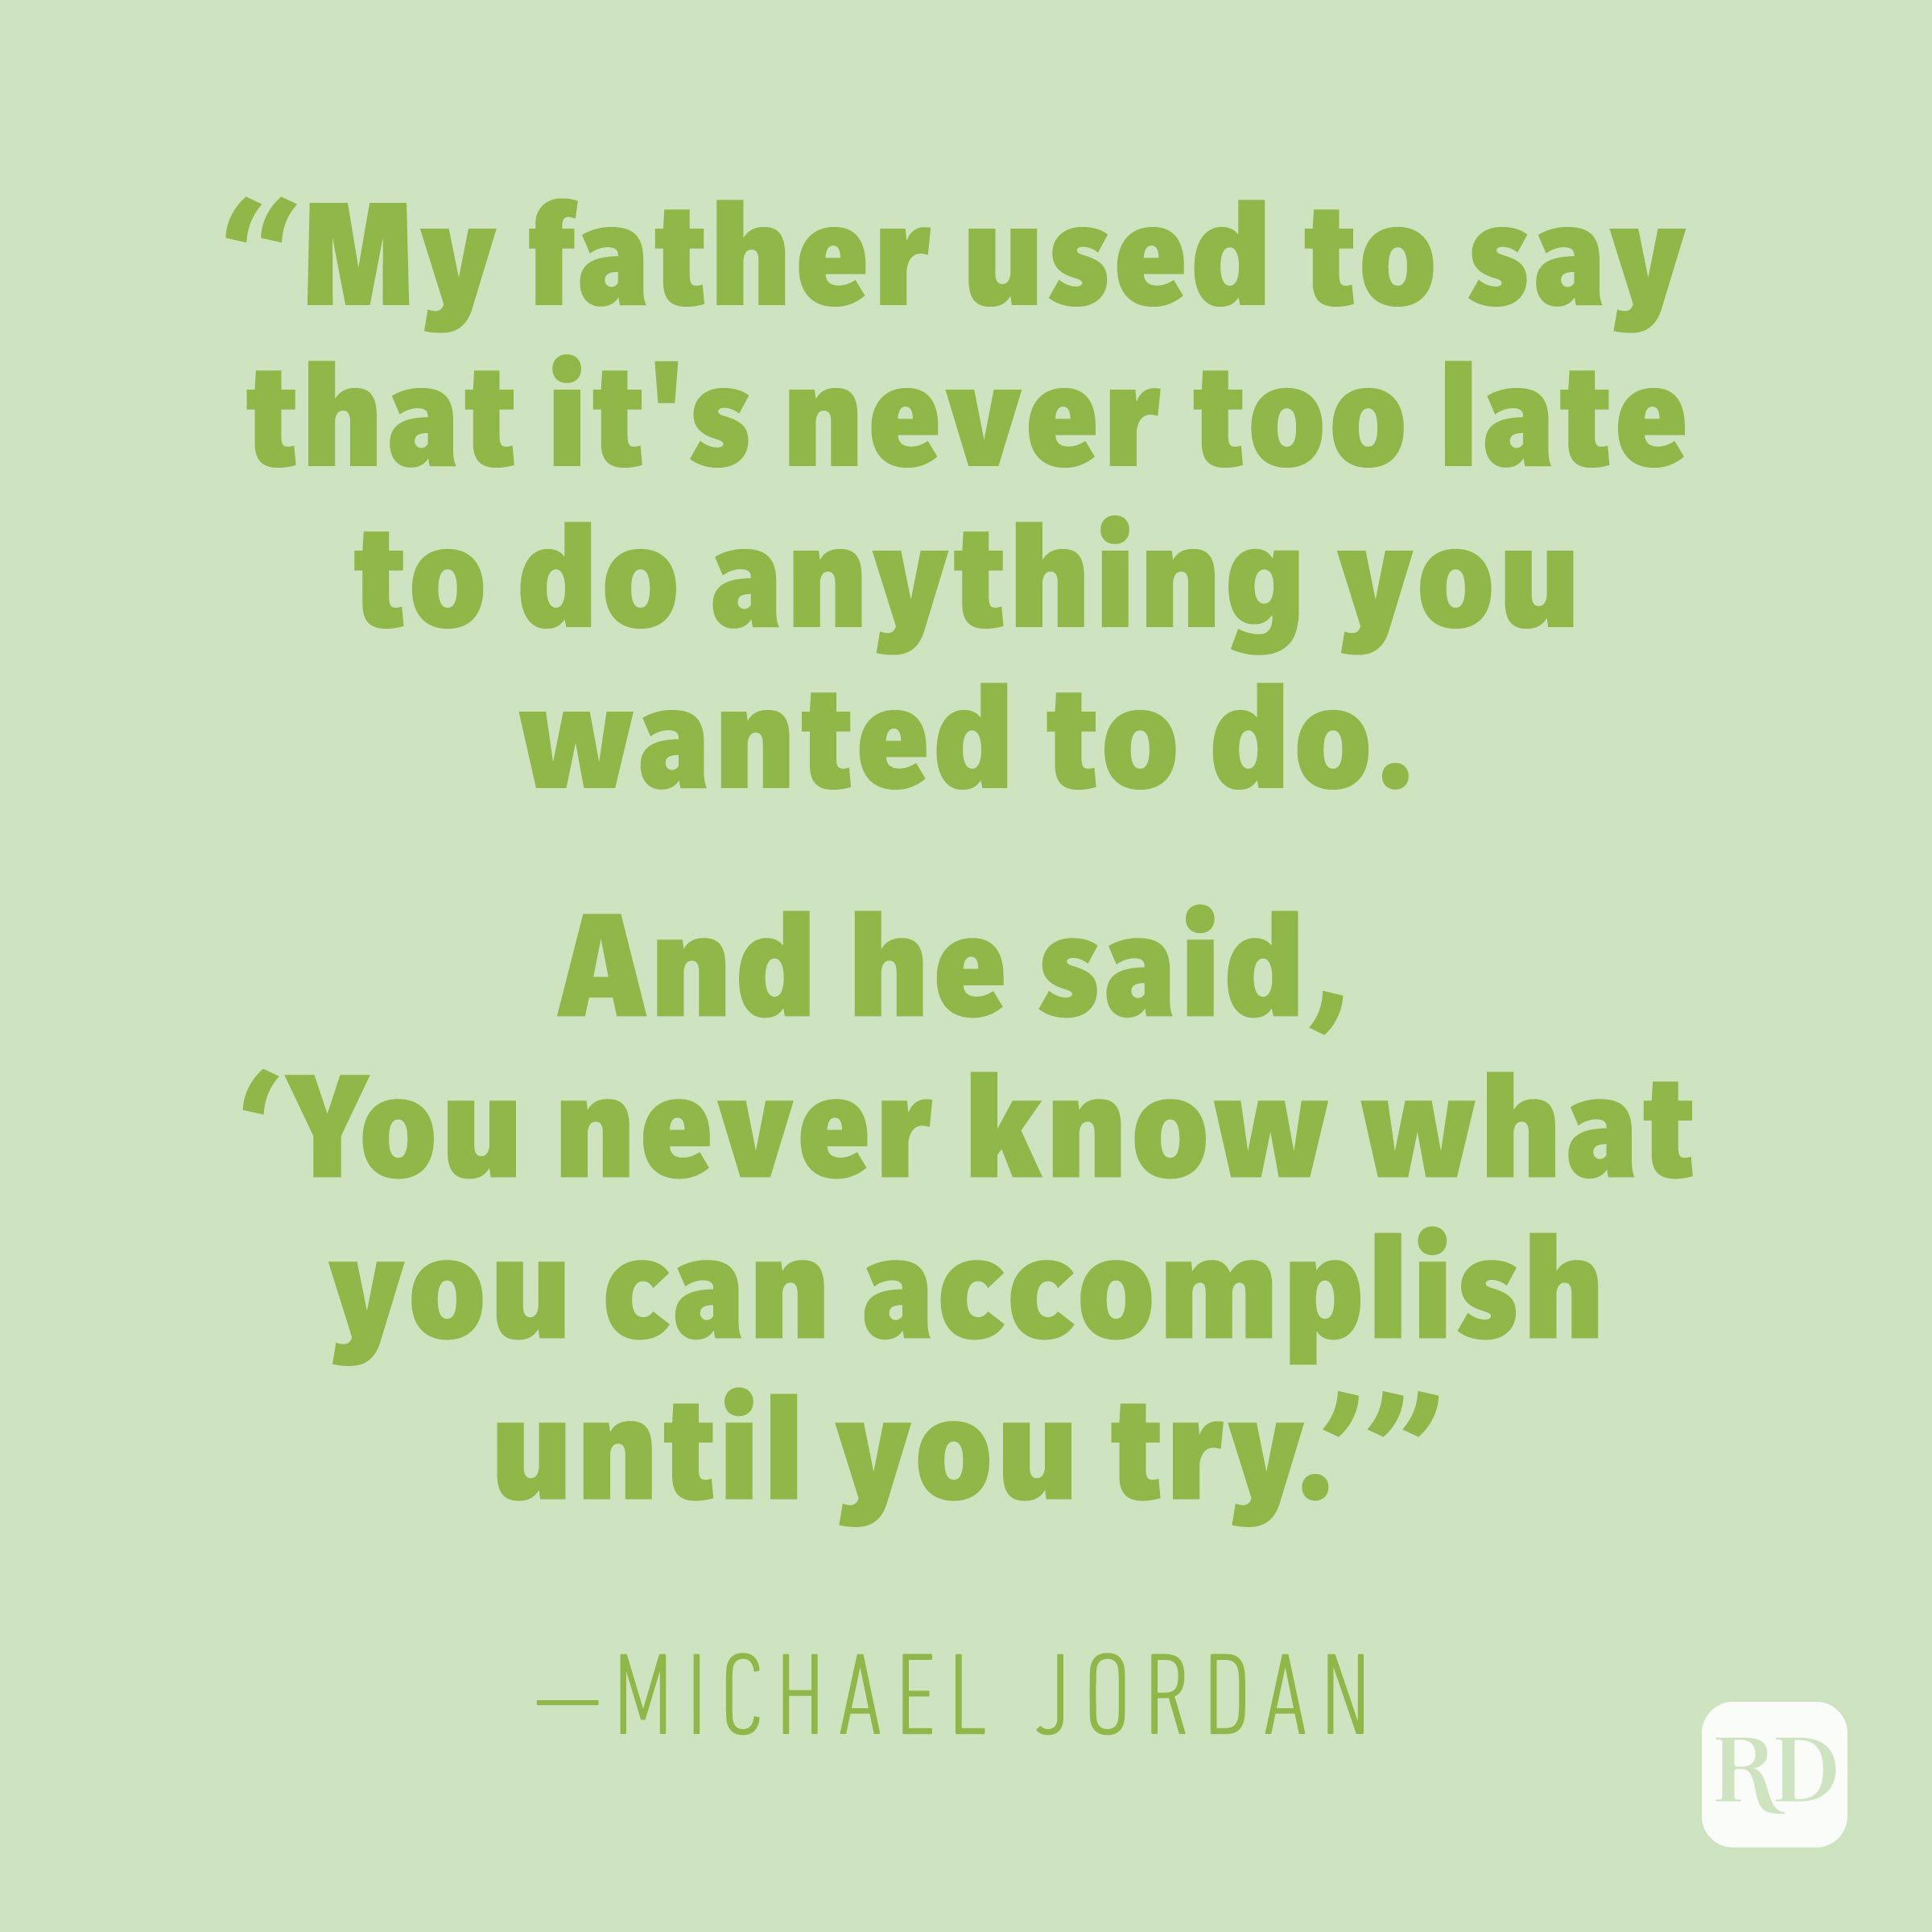 """My father used to say that it's never too late to do anything you wanted to do. And he said, 'You never know what you can accomplish until you try.'"" —MICHAEL JORDAN"